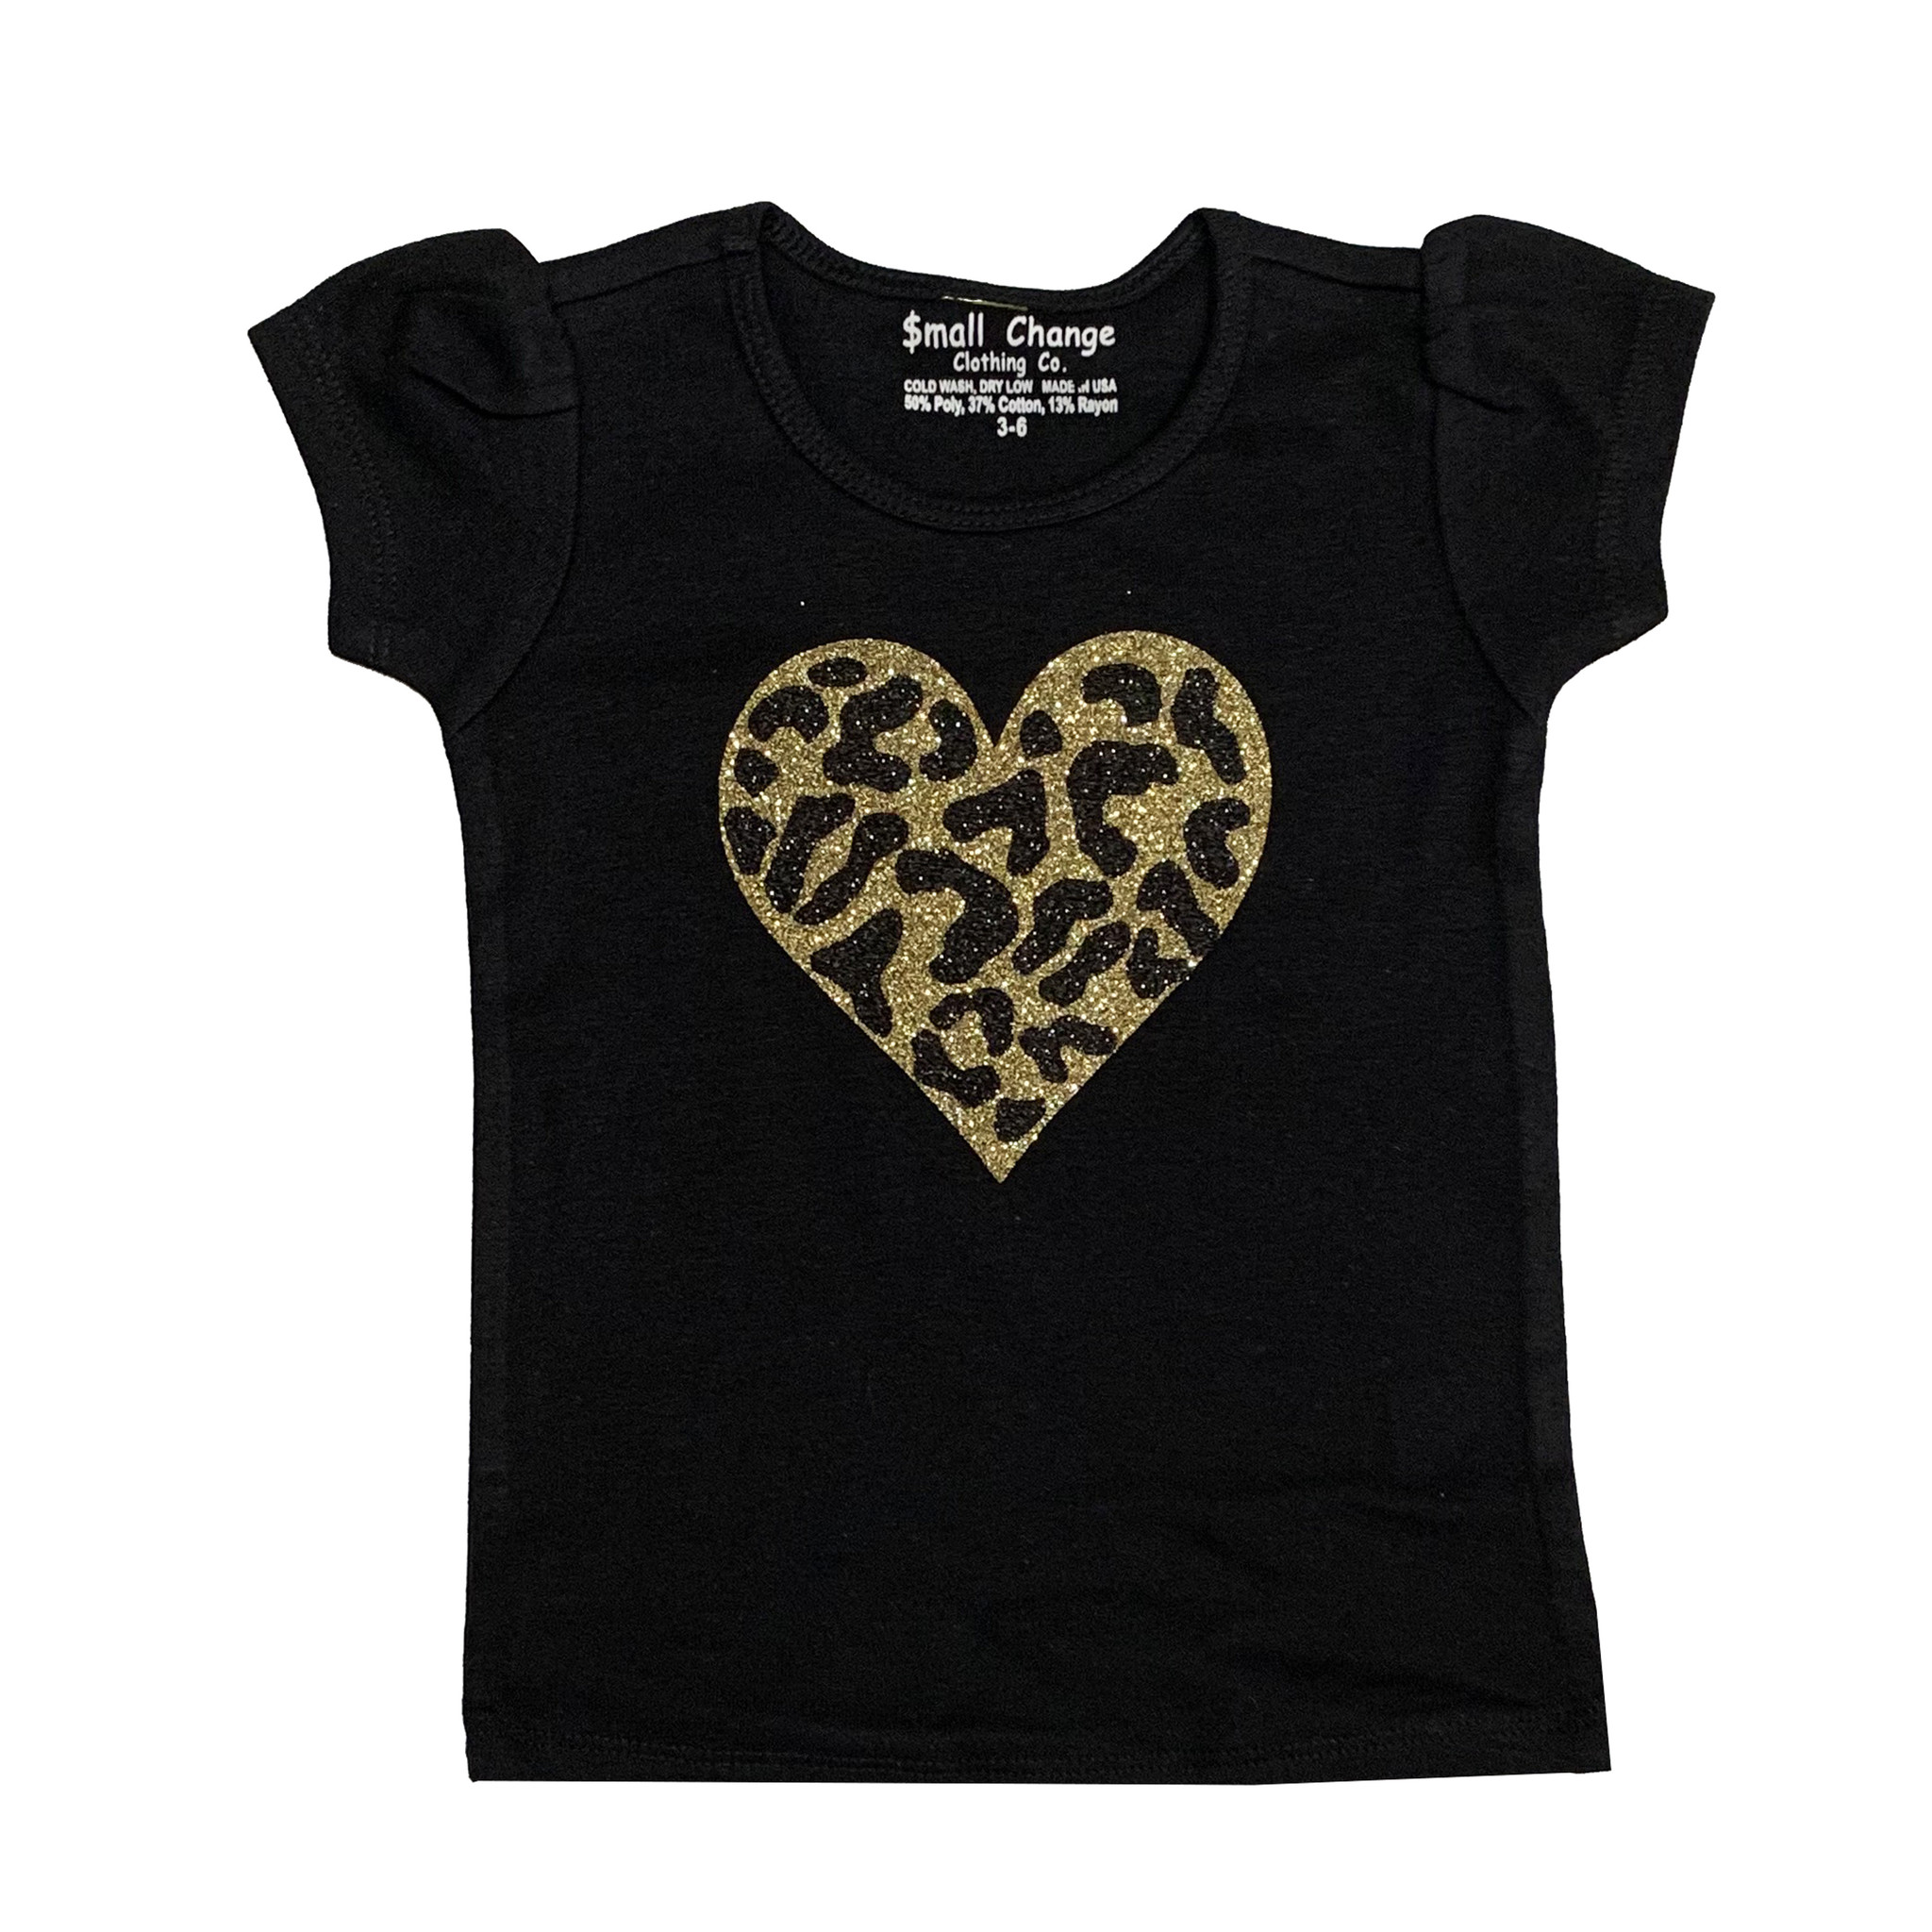 Small Change Gold Cheetah Heart Puffy Sleeve Tee